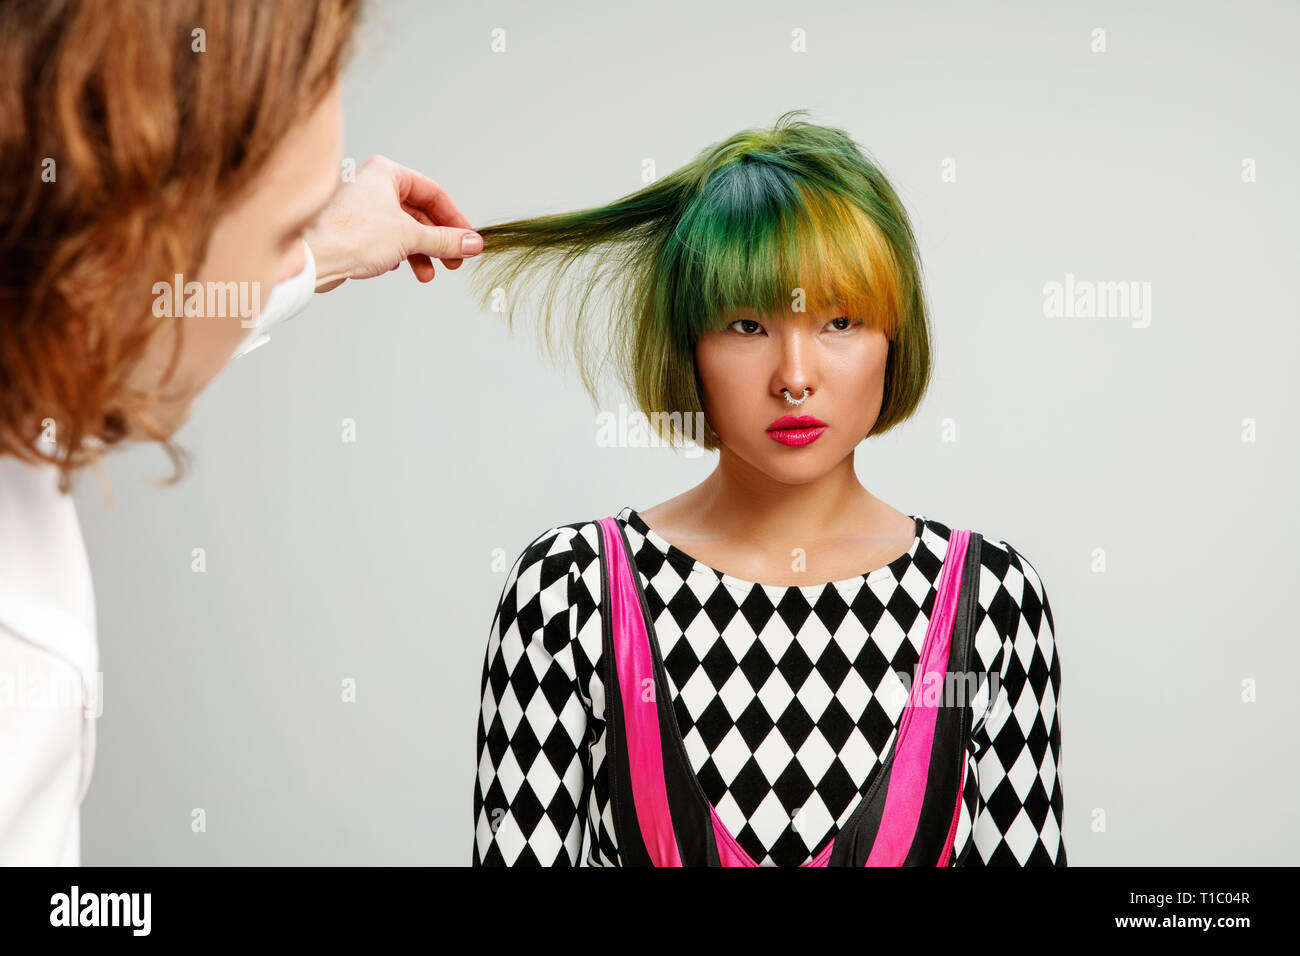 Picture showing adult woman at the hair salon. Studio shot of